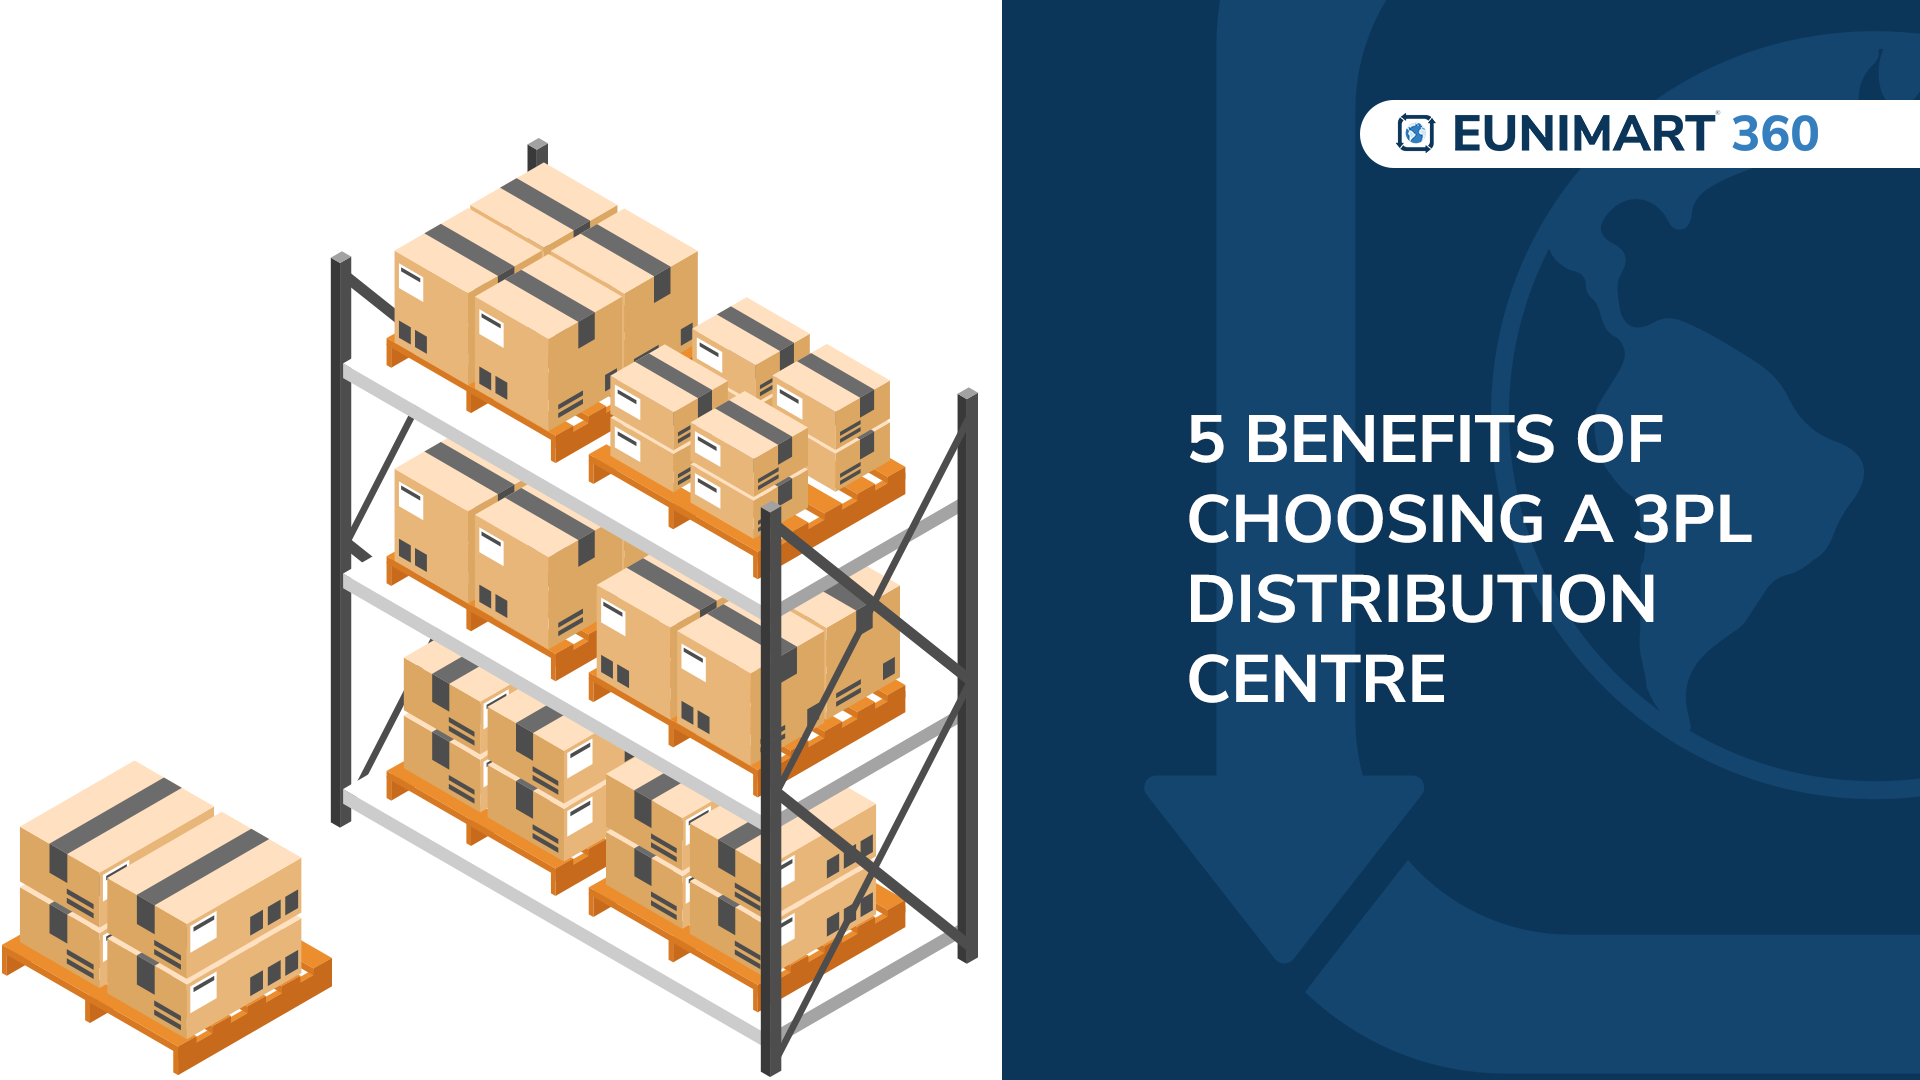 5 Benefits of Choosing a 3PL Distribution Centre